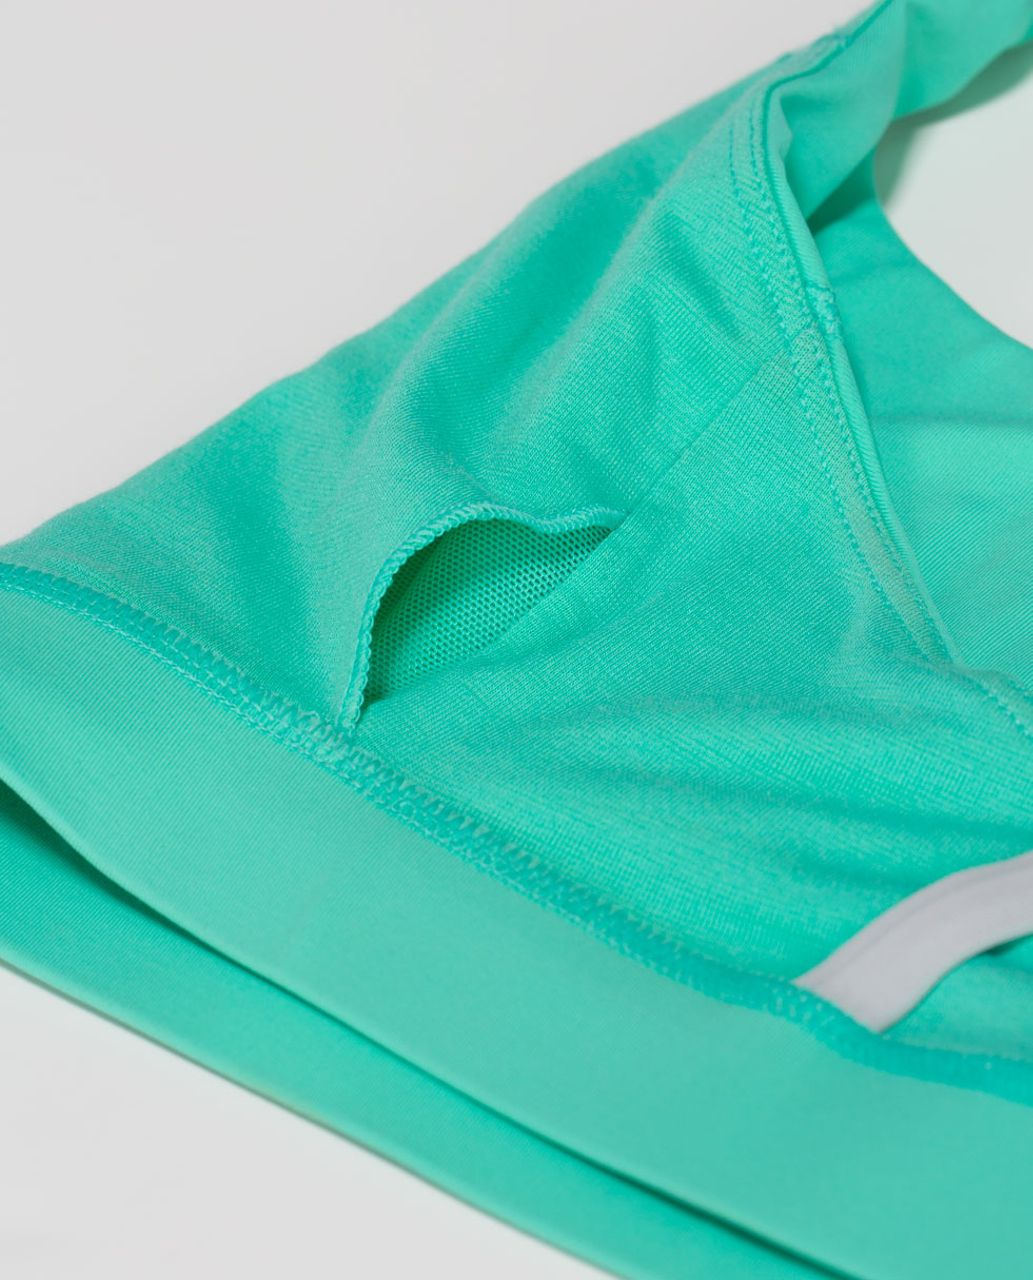 Lululemon Energy Bra - Bali Breeze / Fresh Teal / Silver Spoon